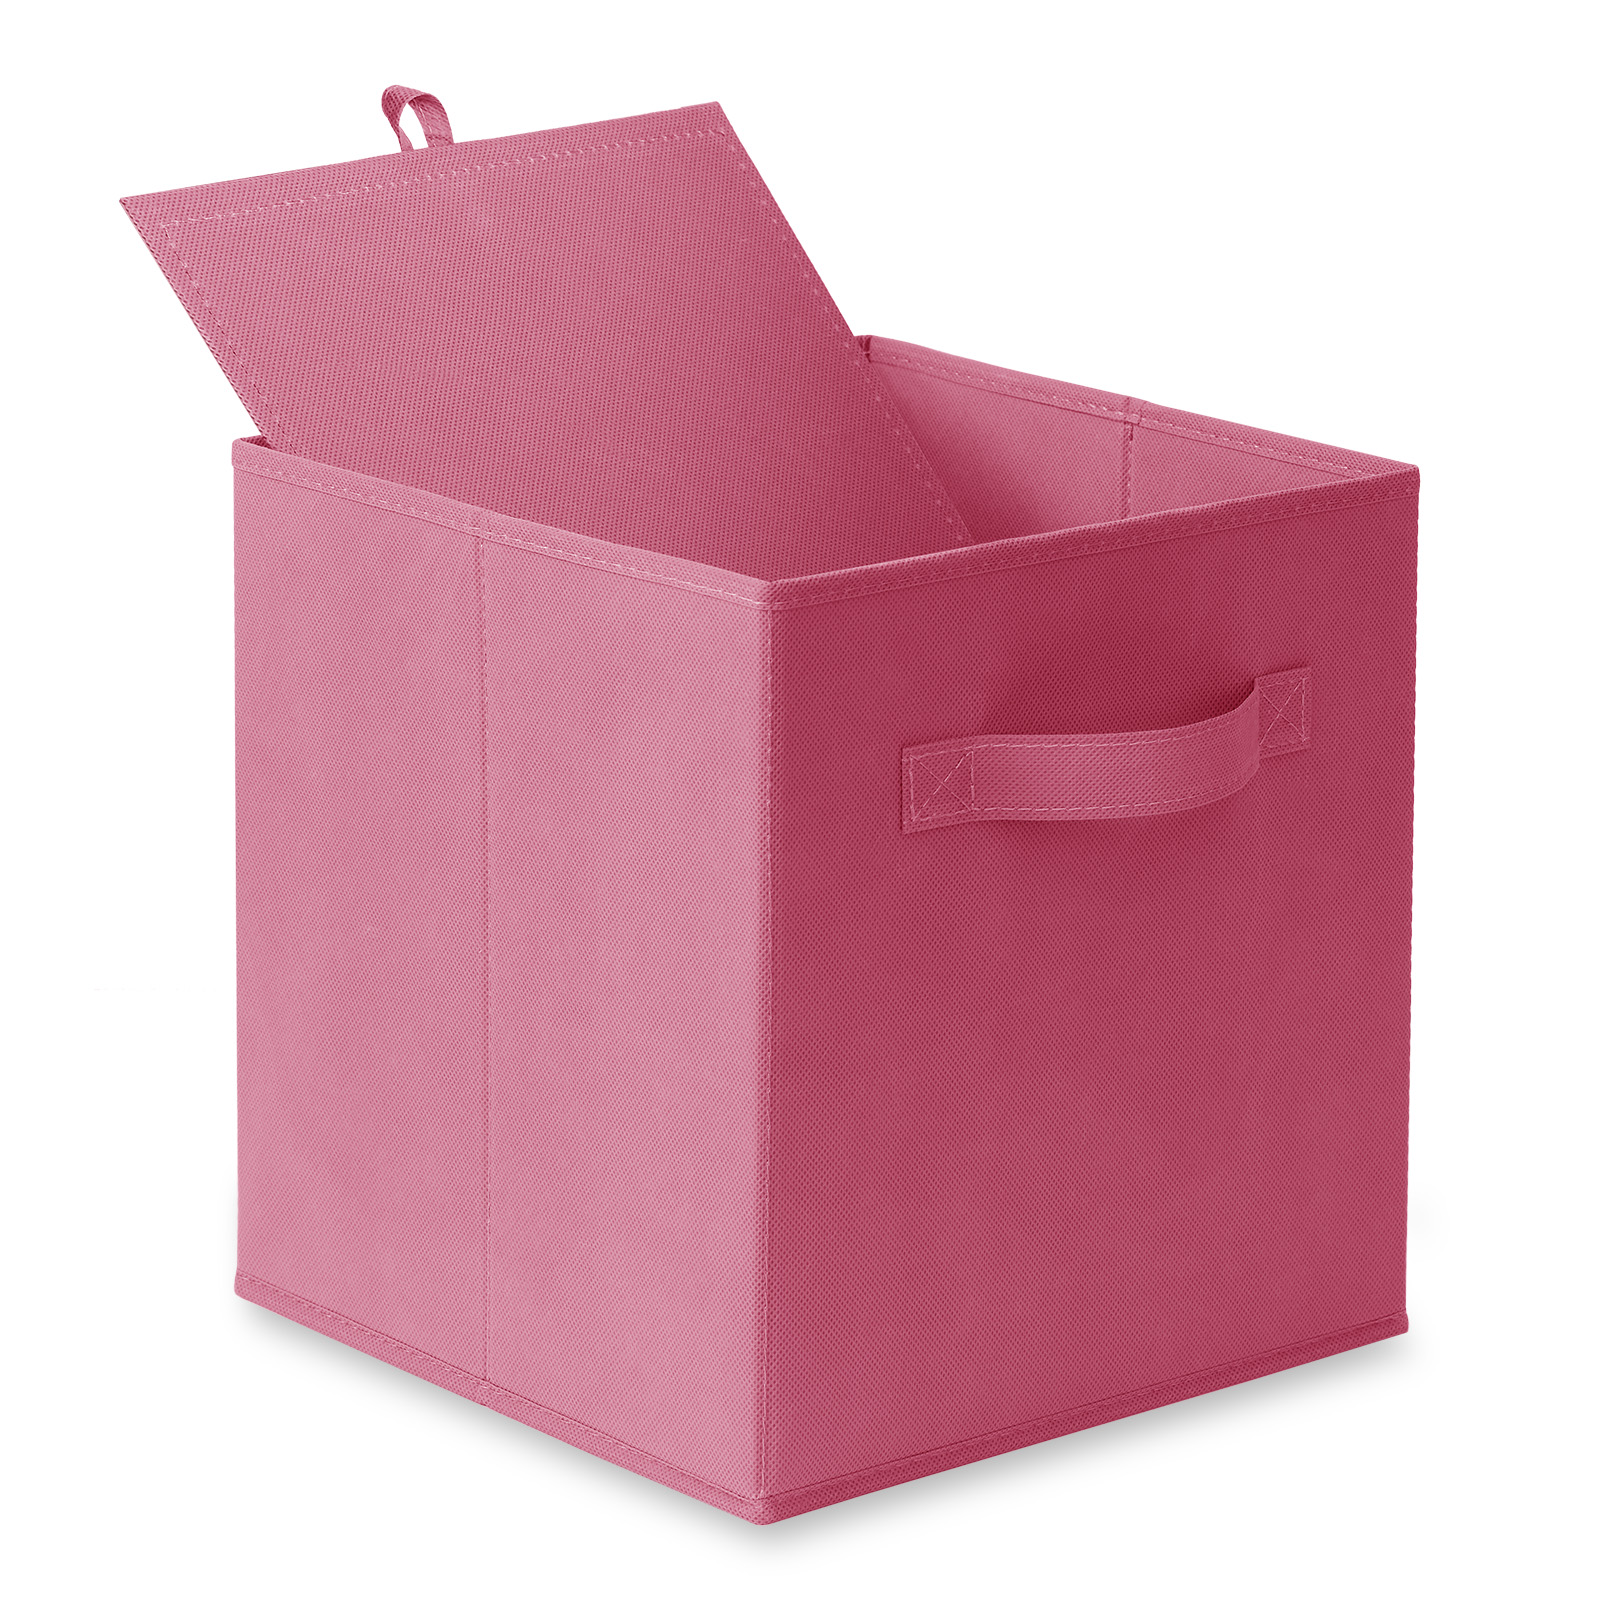 6-Collapsible-Foldable-Cloth-Fabric-Cubby-Cube-Storage-Bins-Baskets-for-Shelves thumbnail 34